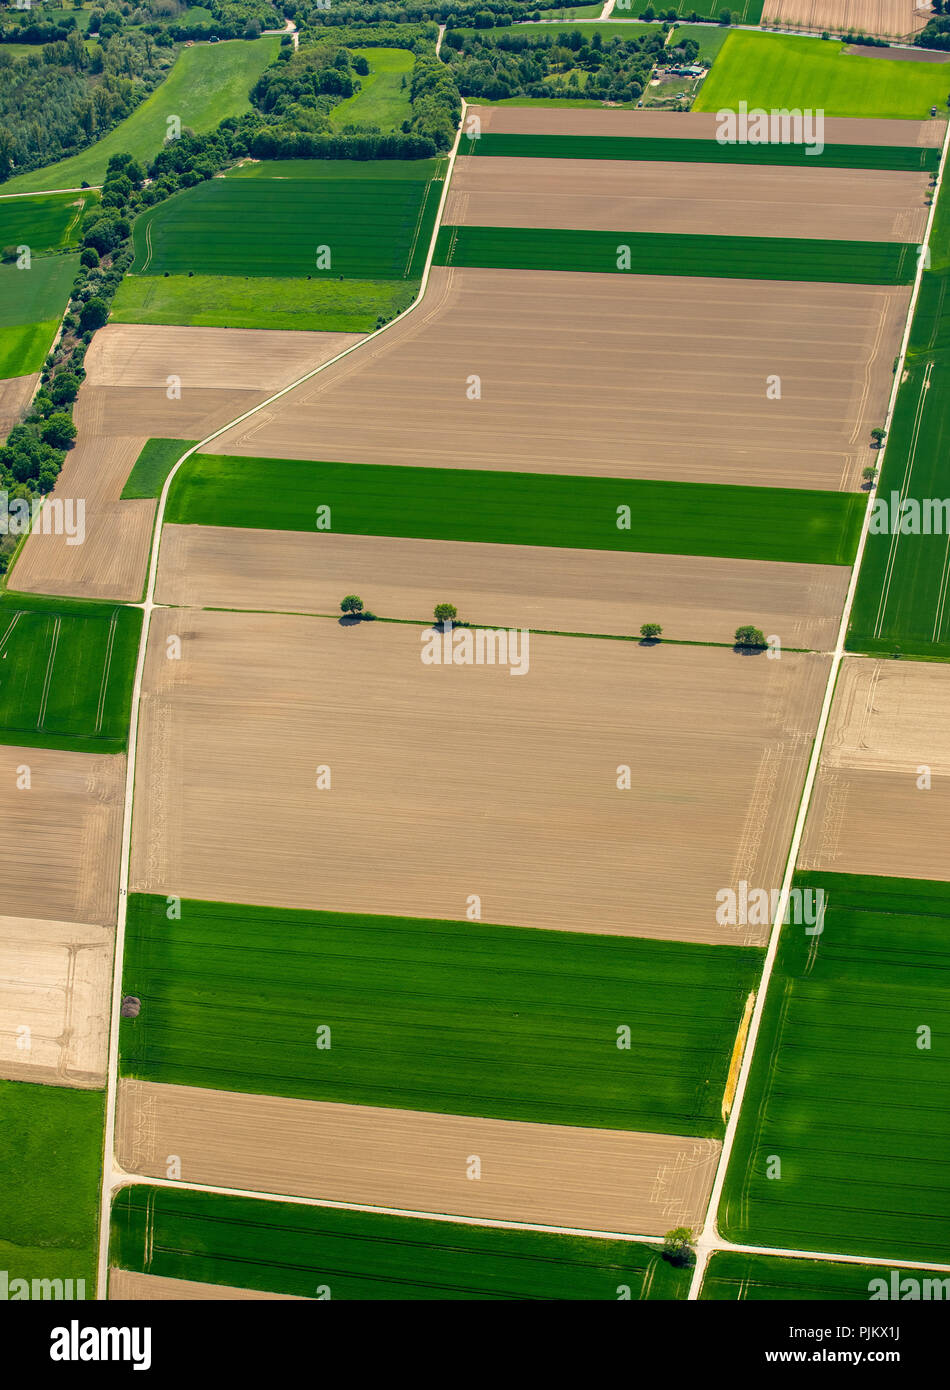 Grain fields on Lower Rhine, crop rotation, corn fields in spring, Neuss, Lower Rhine, North Rhine-Westphalia, Germany - Stock Image